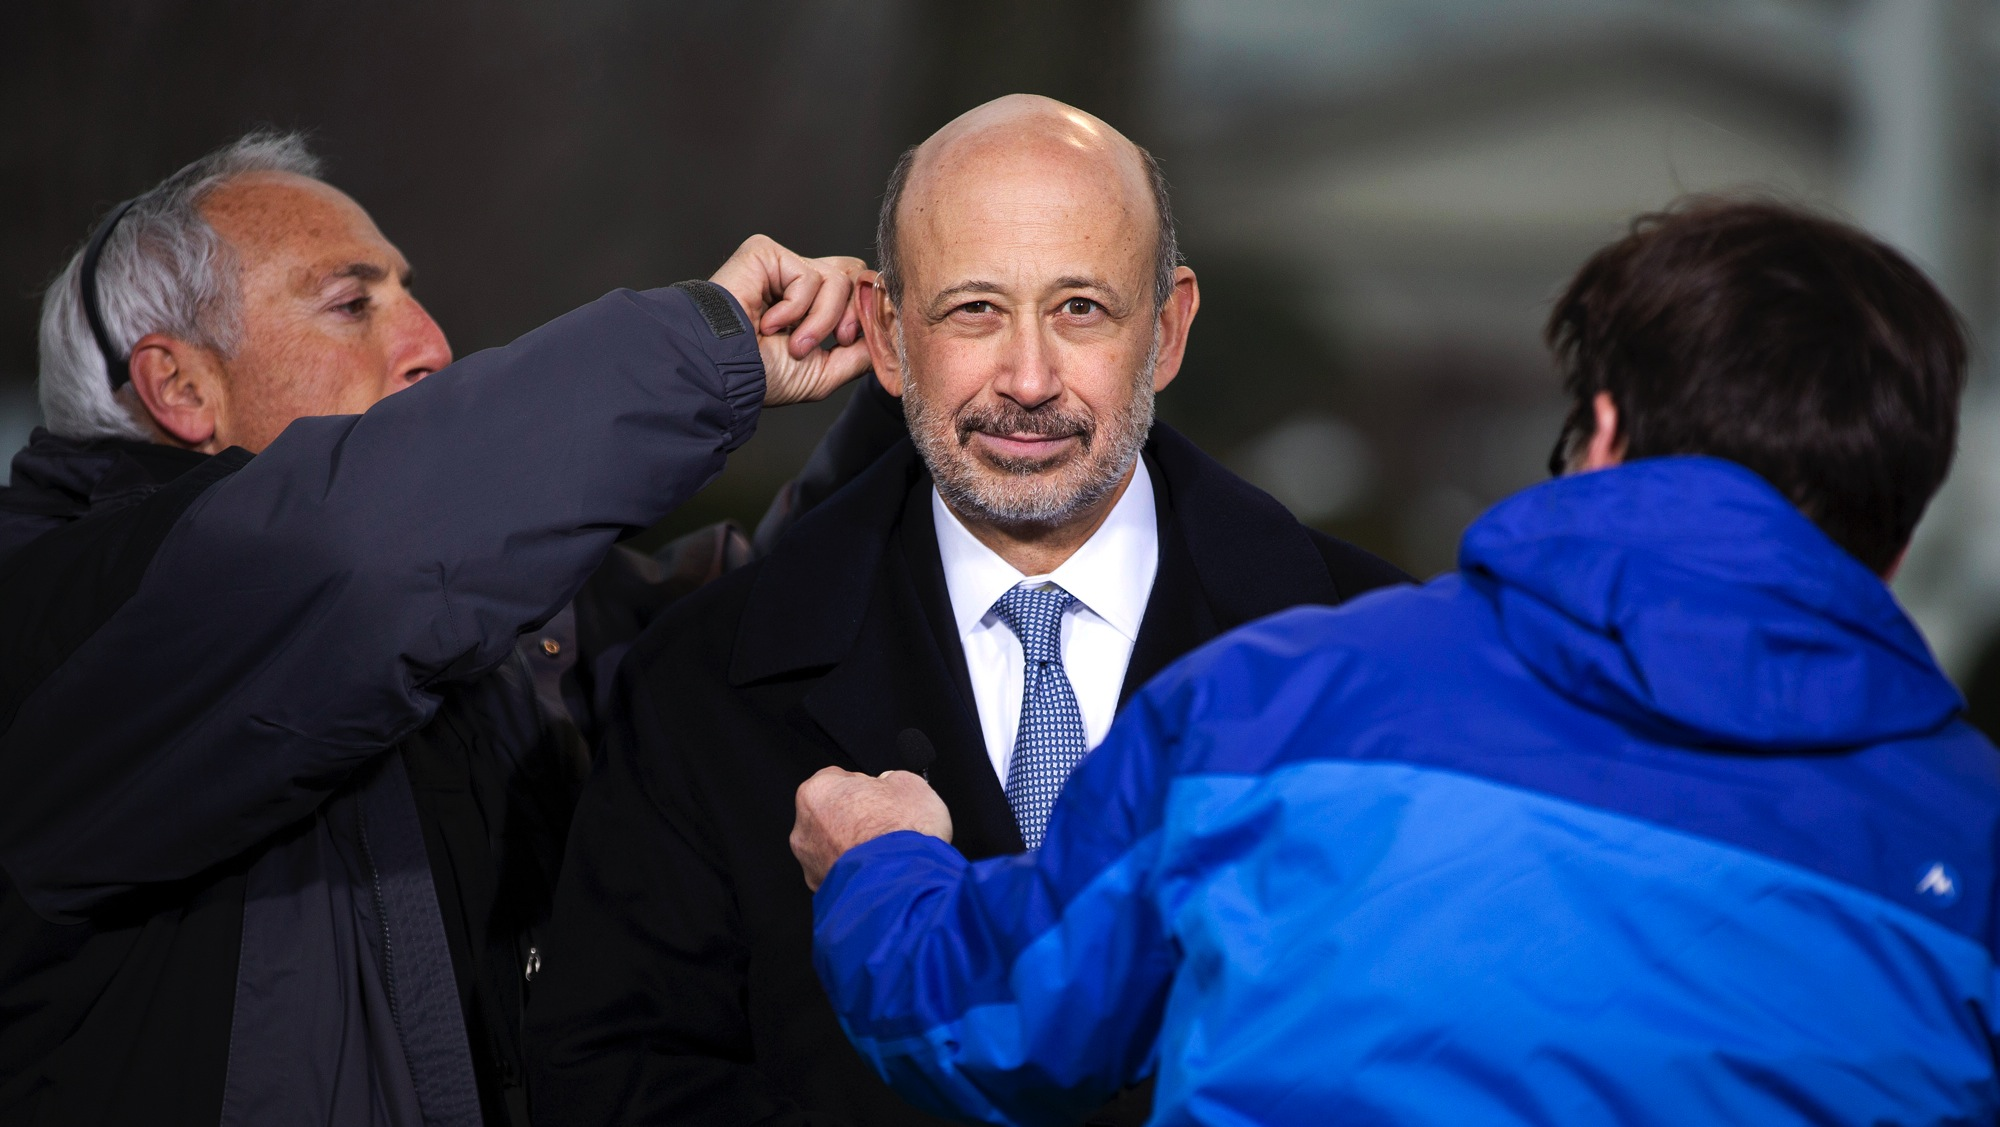 Lloyd Blankfein, Chairman and CEO, Goldman Sachs Group, is helped by technicians after speaking with the media after meeting with U.S. President Barack Obama and other CEOs at the White House in Washington February 5, 2013. Obama meets with chief executives from 12 companies on a variety of topics including immigration reform and how it fits into his broader economic agenda, and his efforts to achieve balanced deficit reduction. REUTERS/Joshua Roberts (UNITED STATES - Tags: POLITICS BUSINESS)